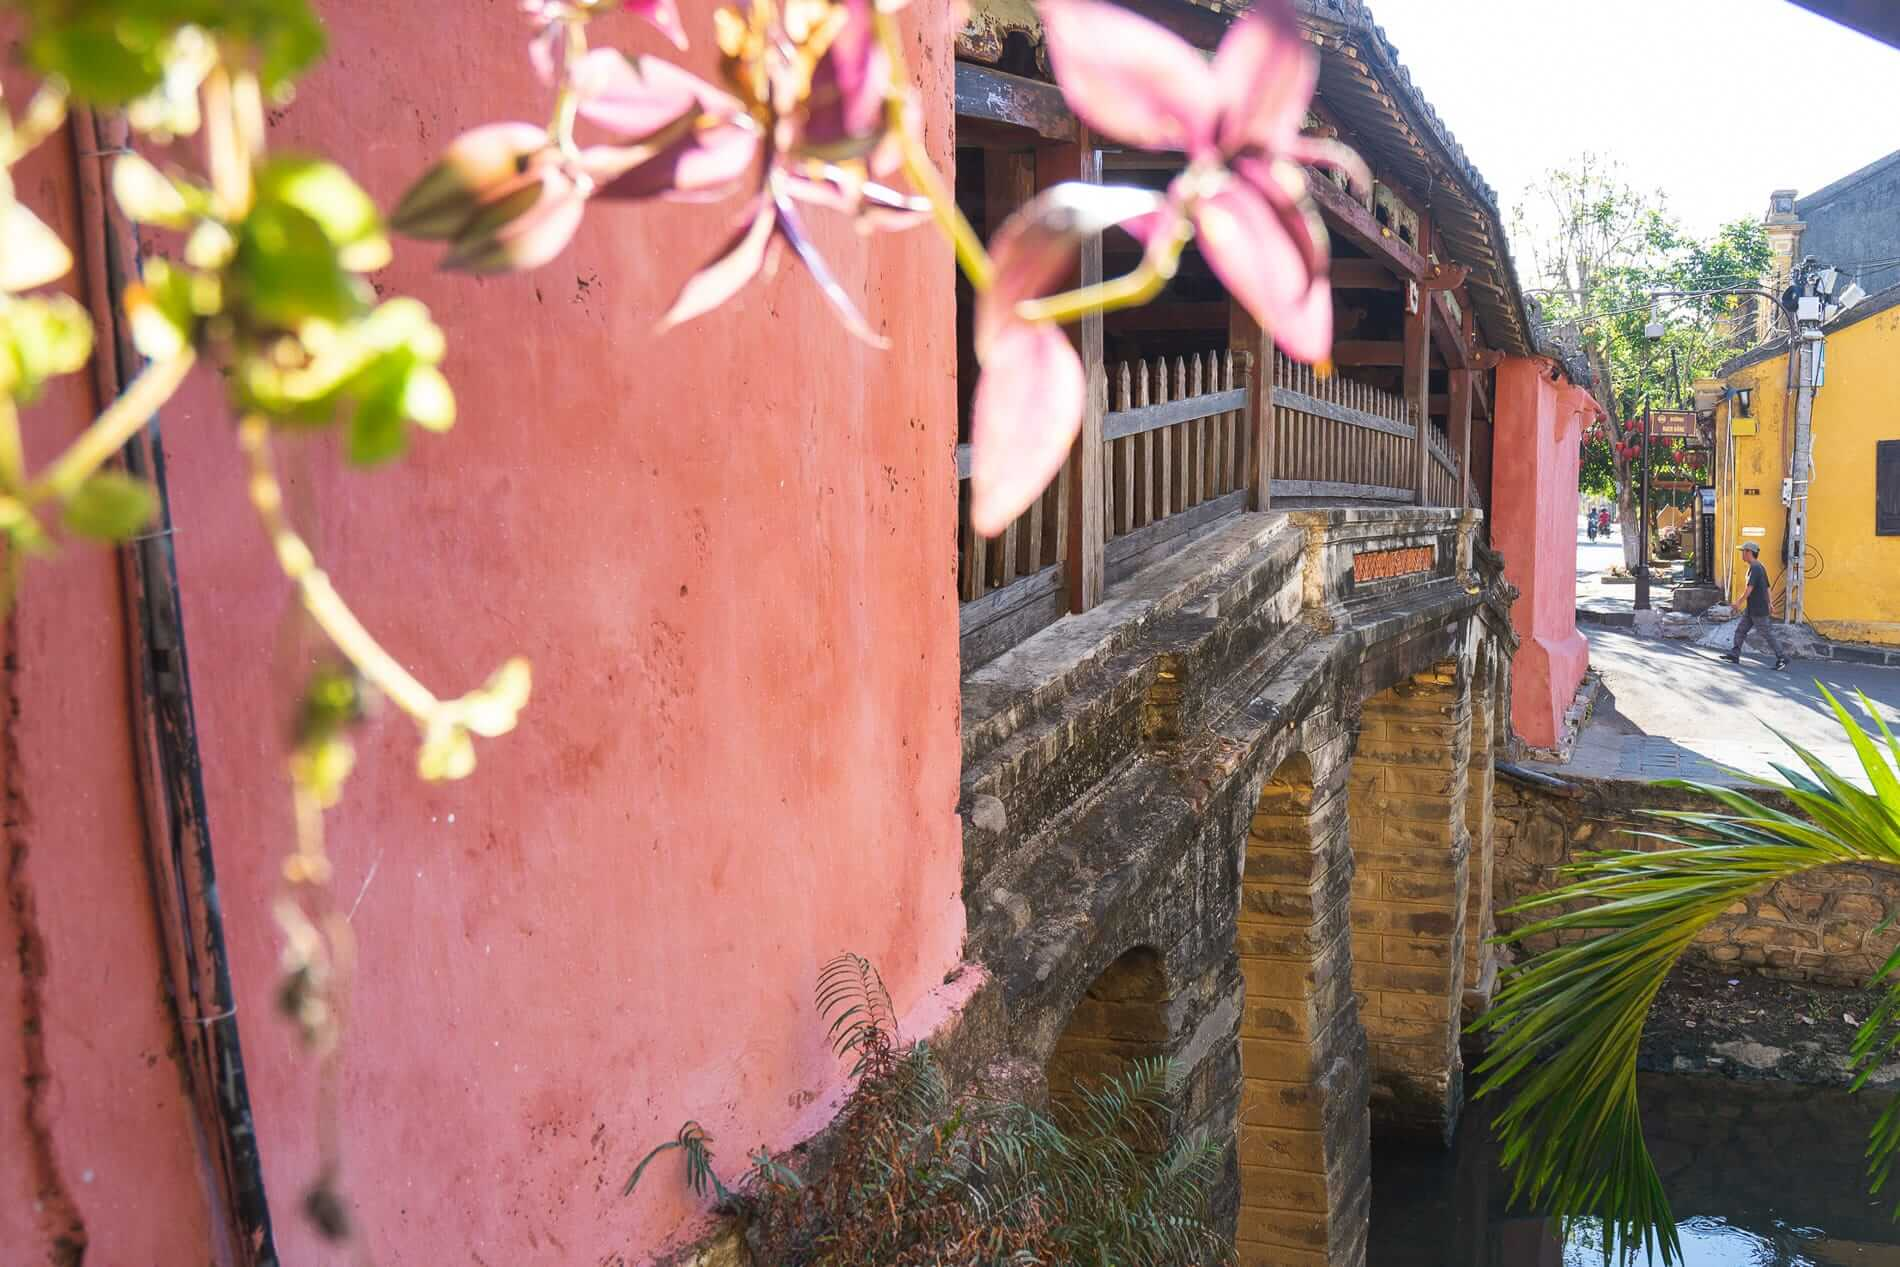 Japanese Covered bridge - Hoi An Temples and Pagodas